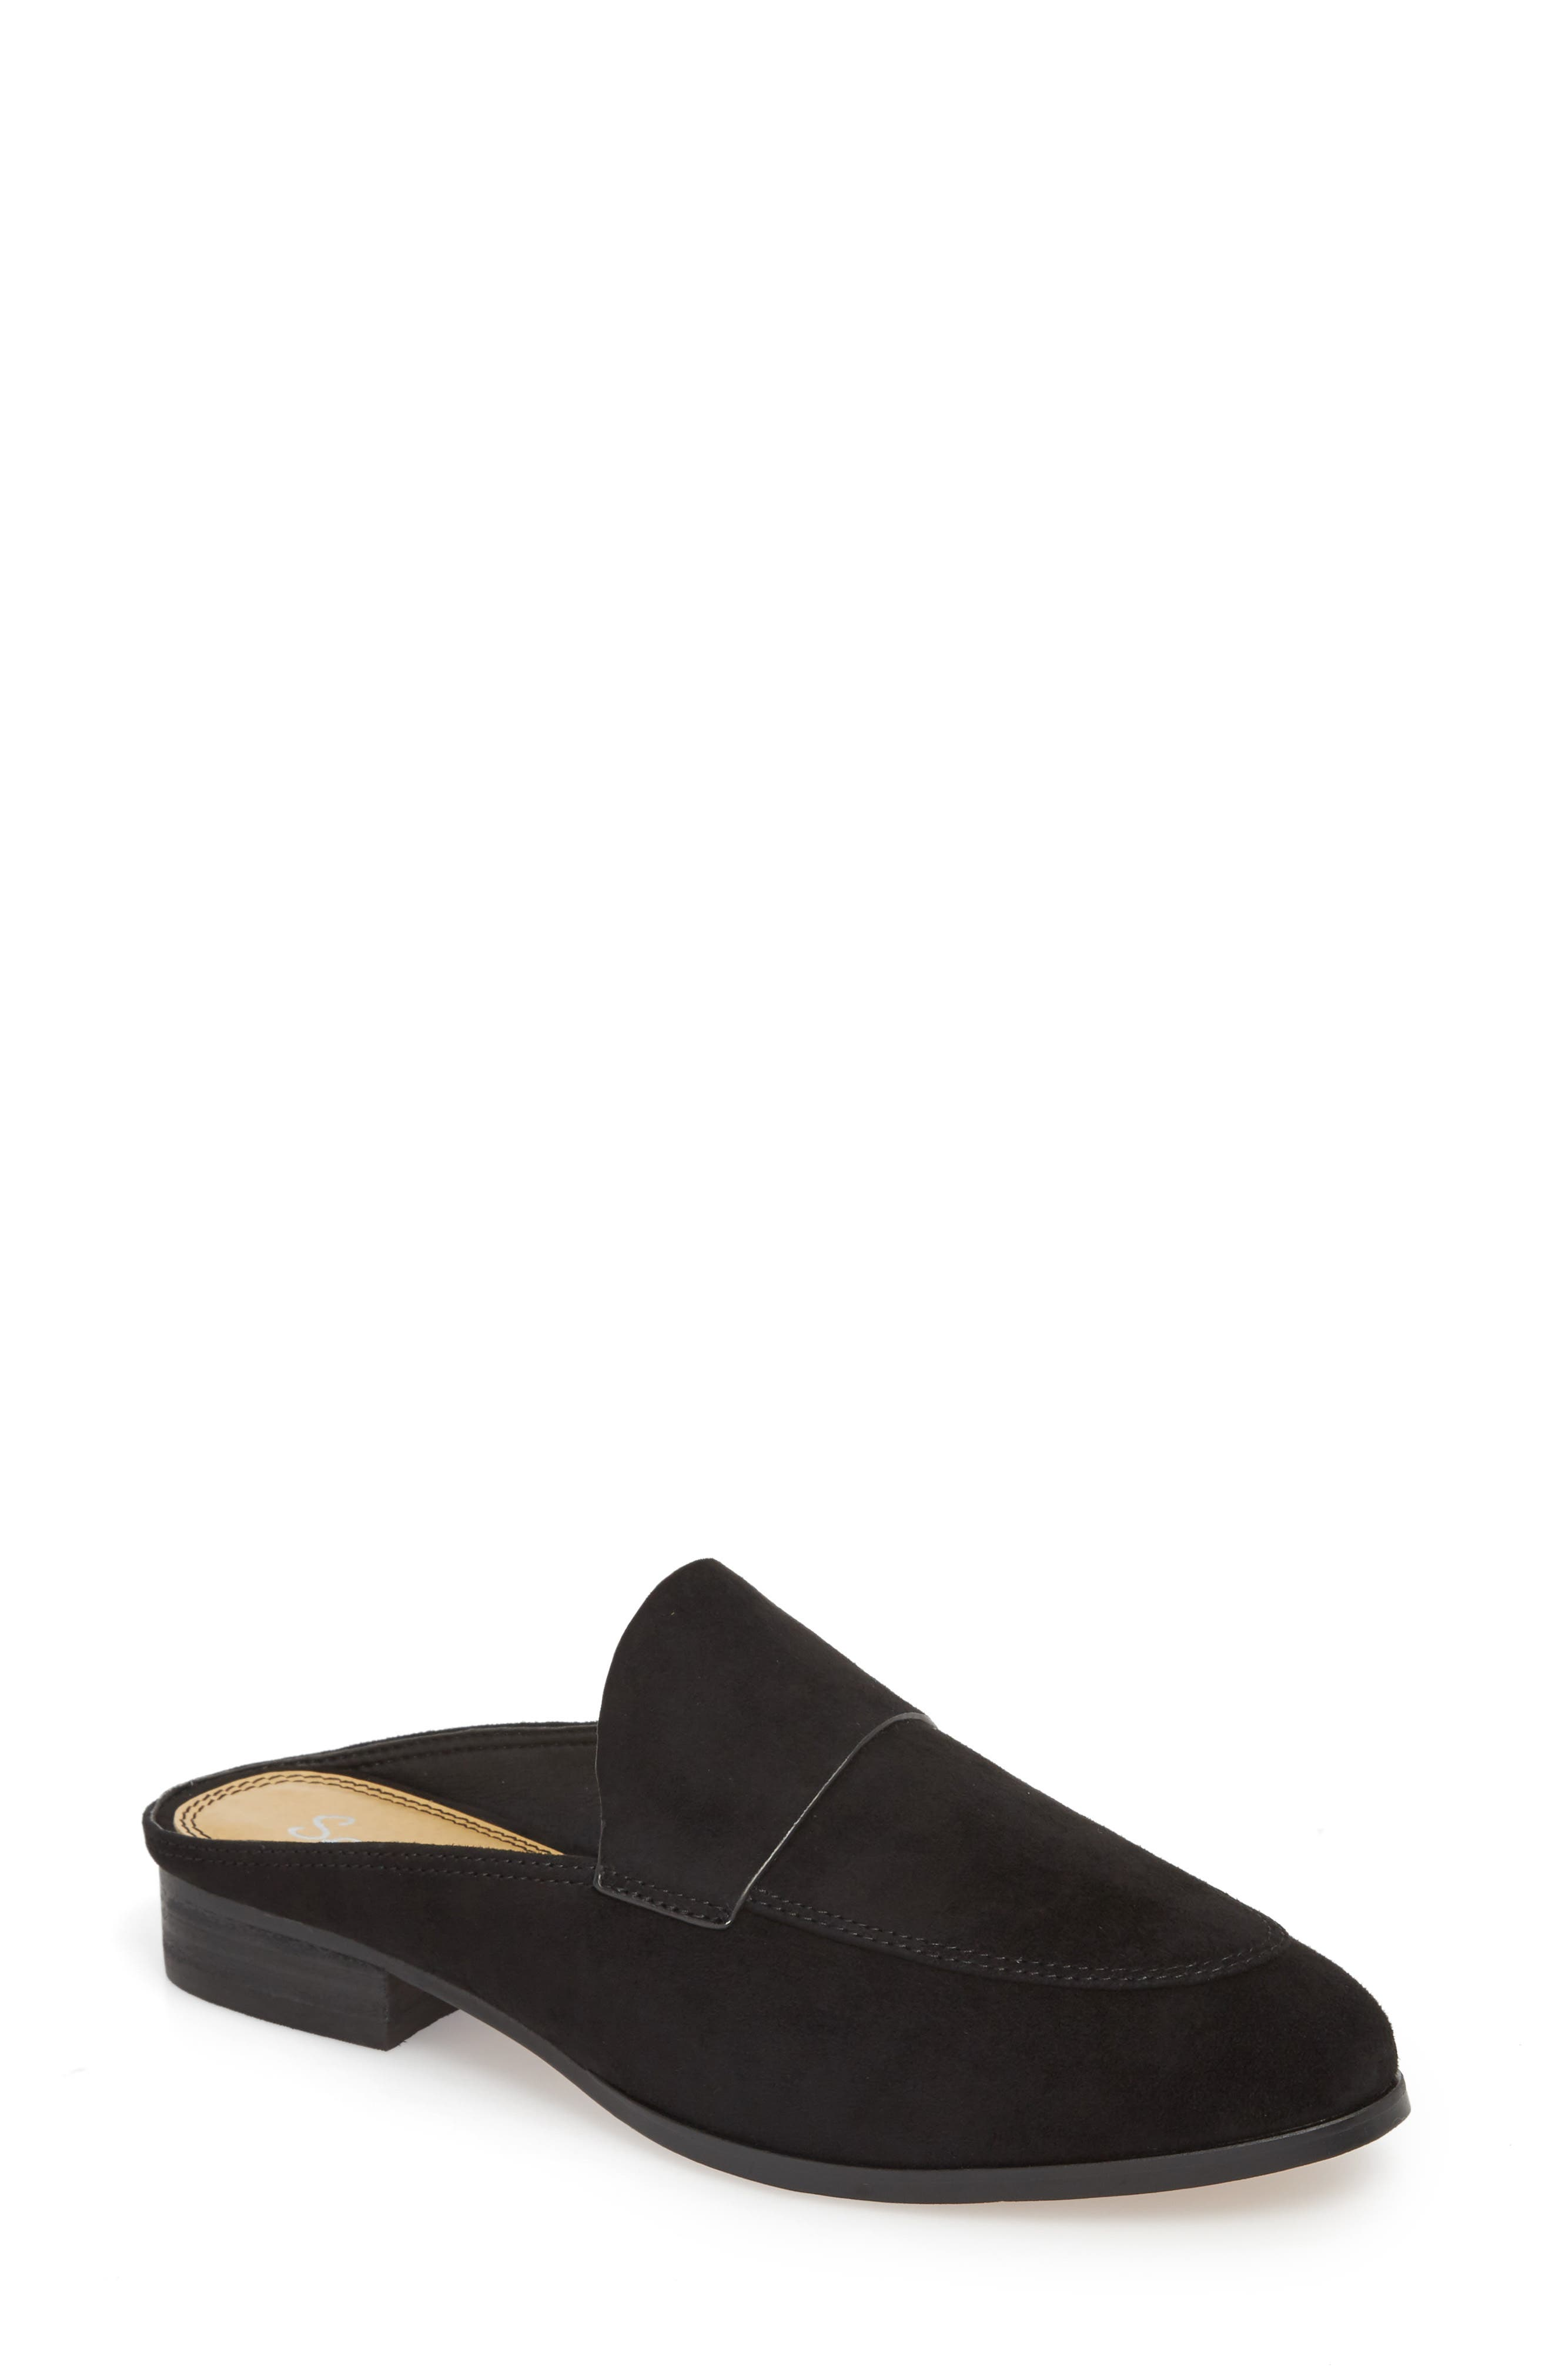 Nima Loafer Mule,                             Main thumbnail 1, color,                             013